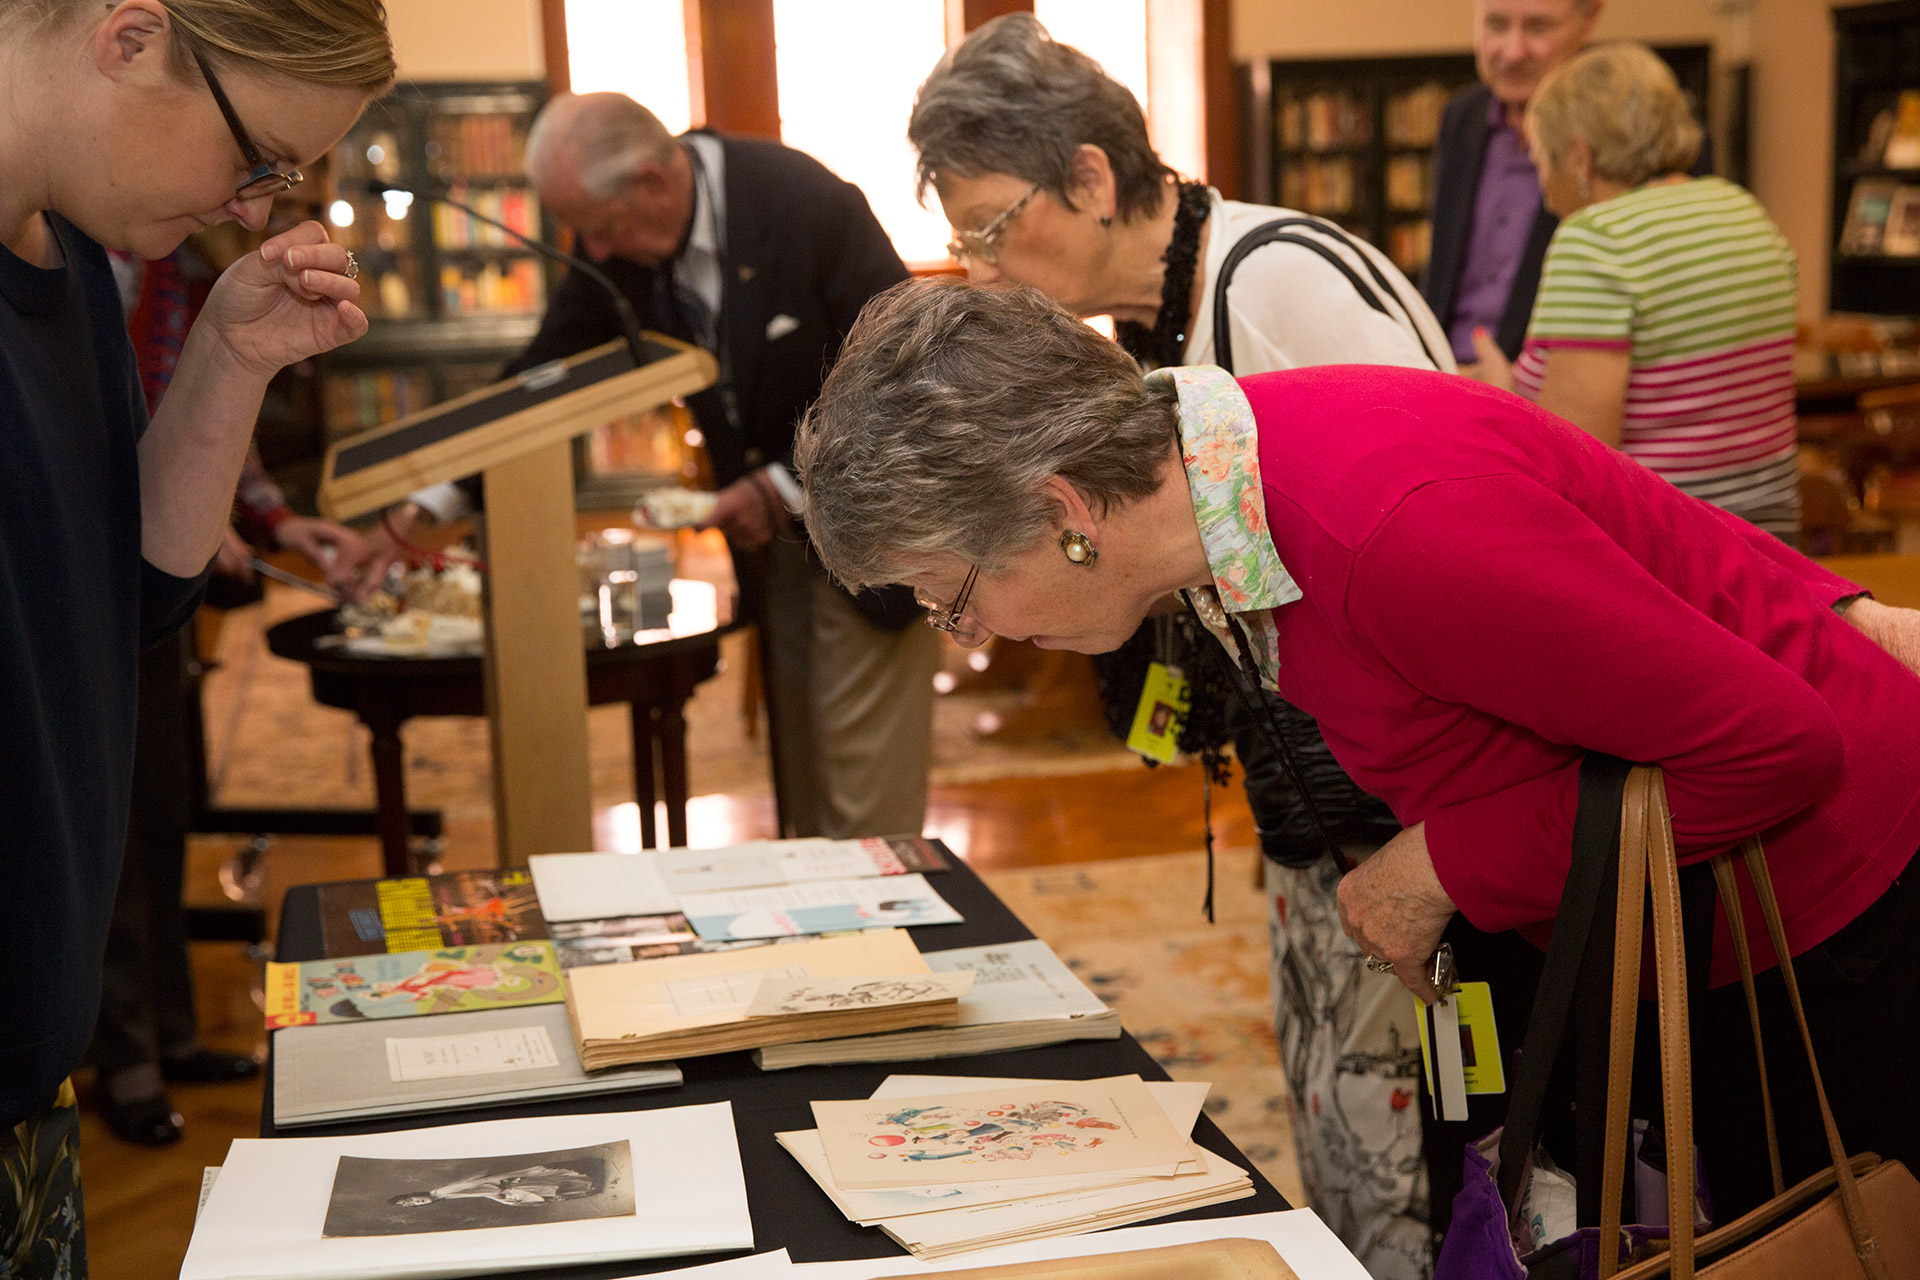 Woman looking at collection items